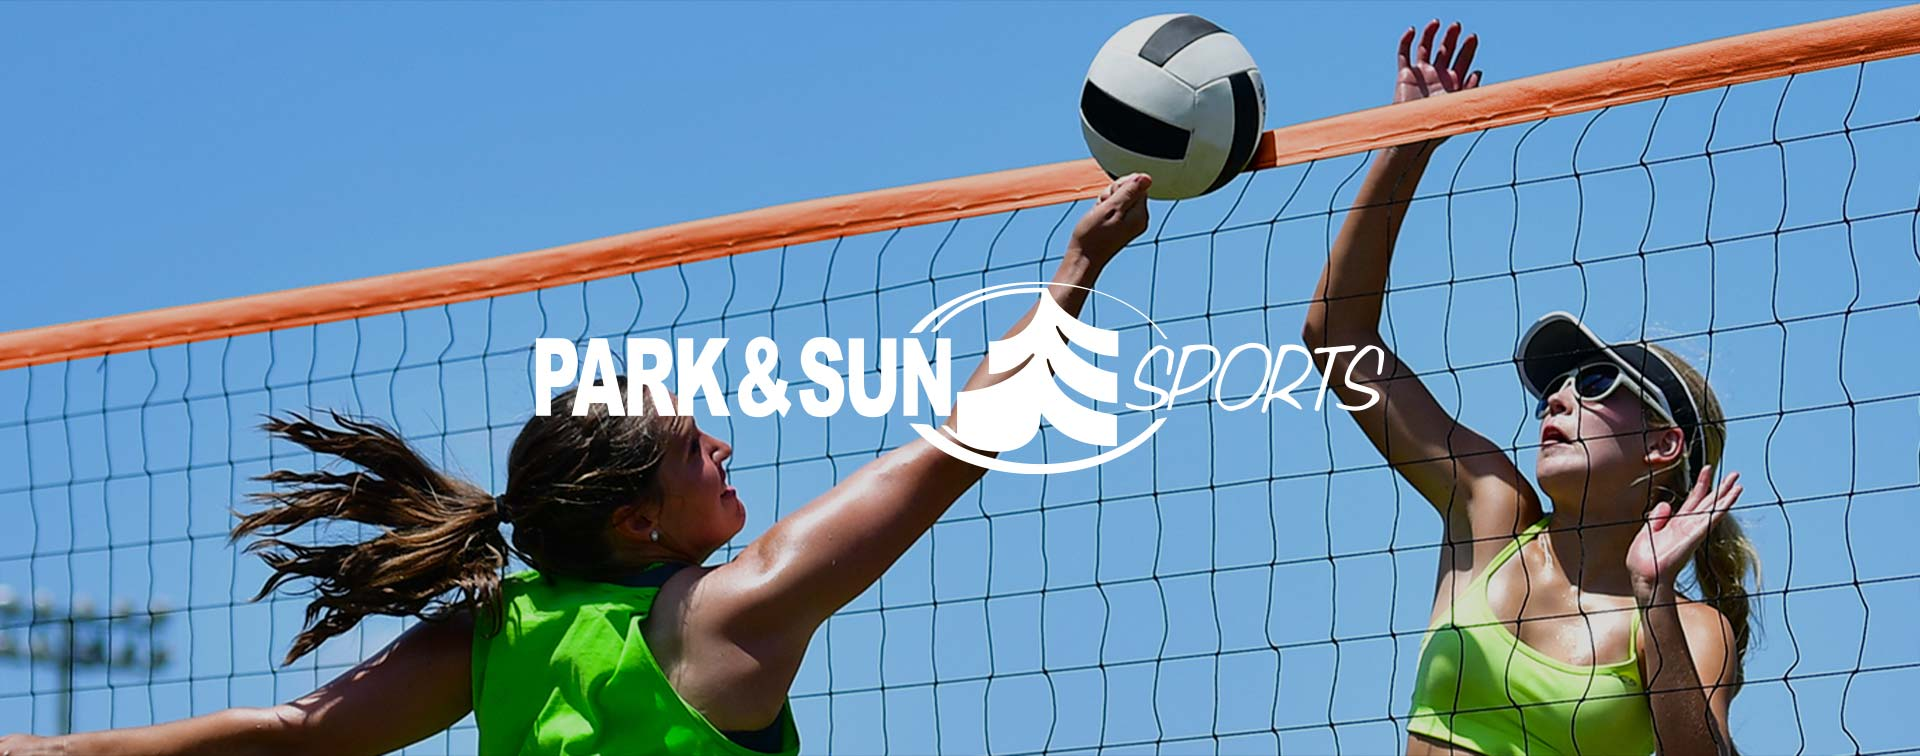 Park and Sun volleyball